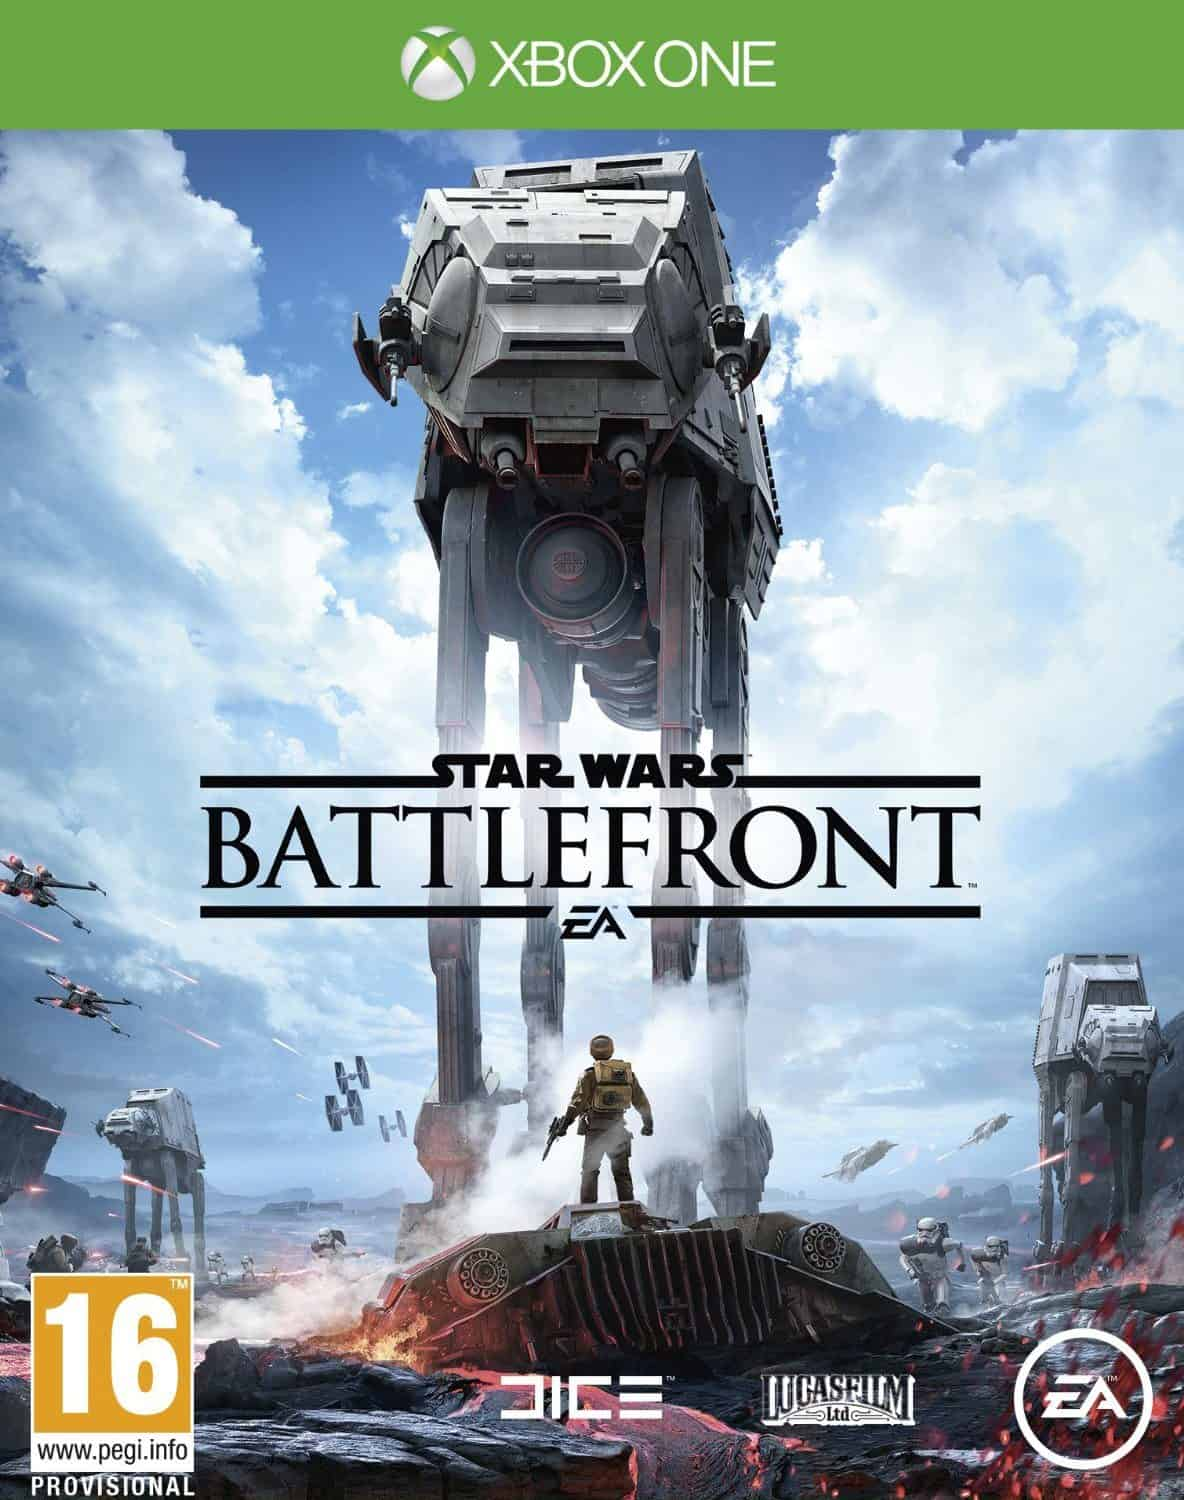 Game Review: Star Wars Battlefront (Xbox One)